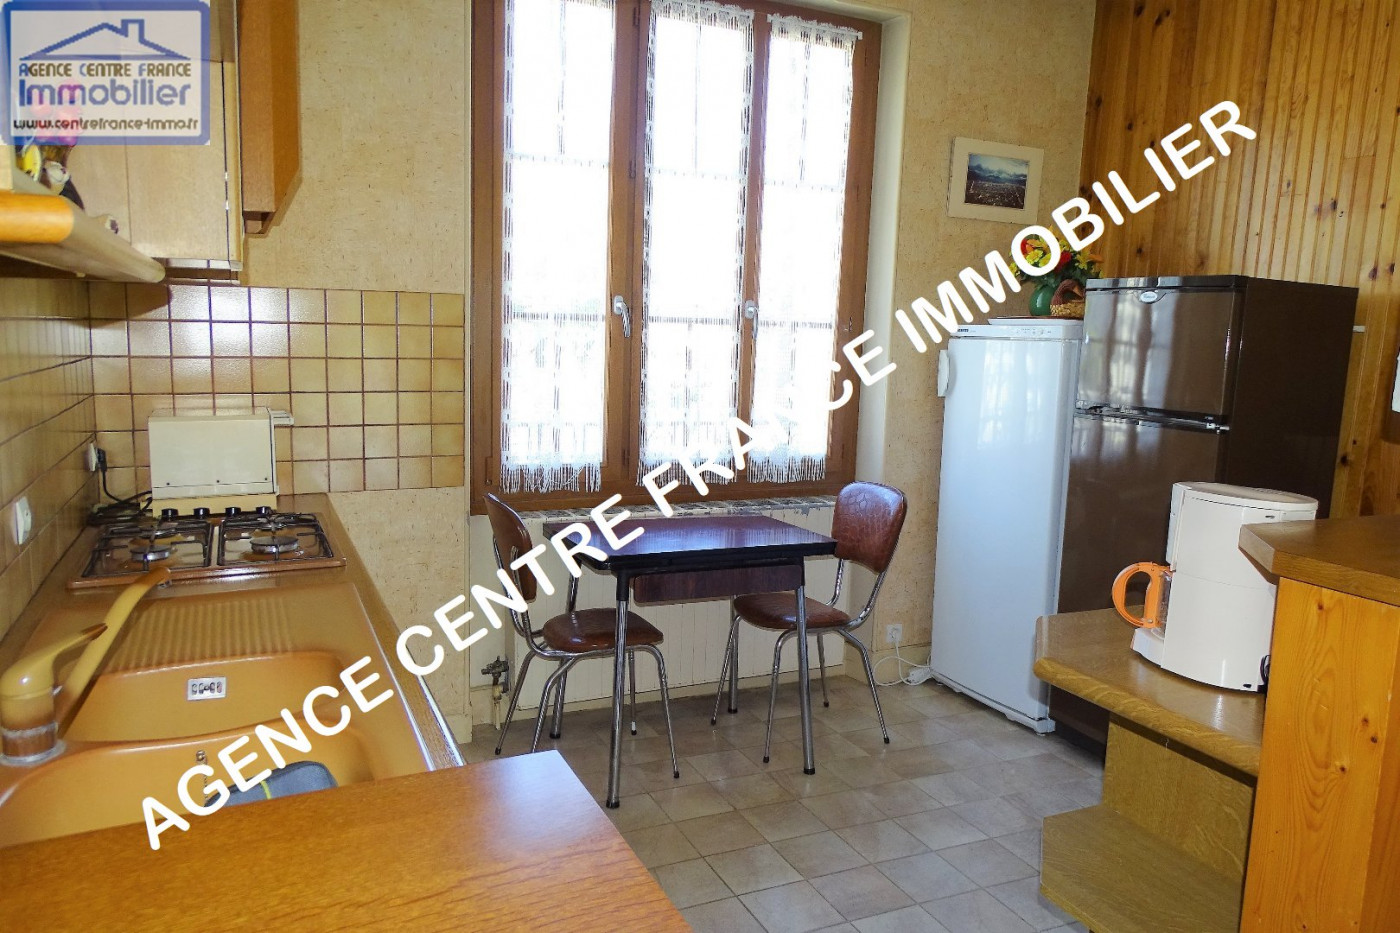 A vendre Bourges 030011170 Agence centre france immobilier